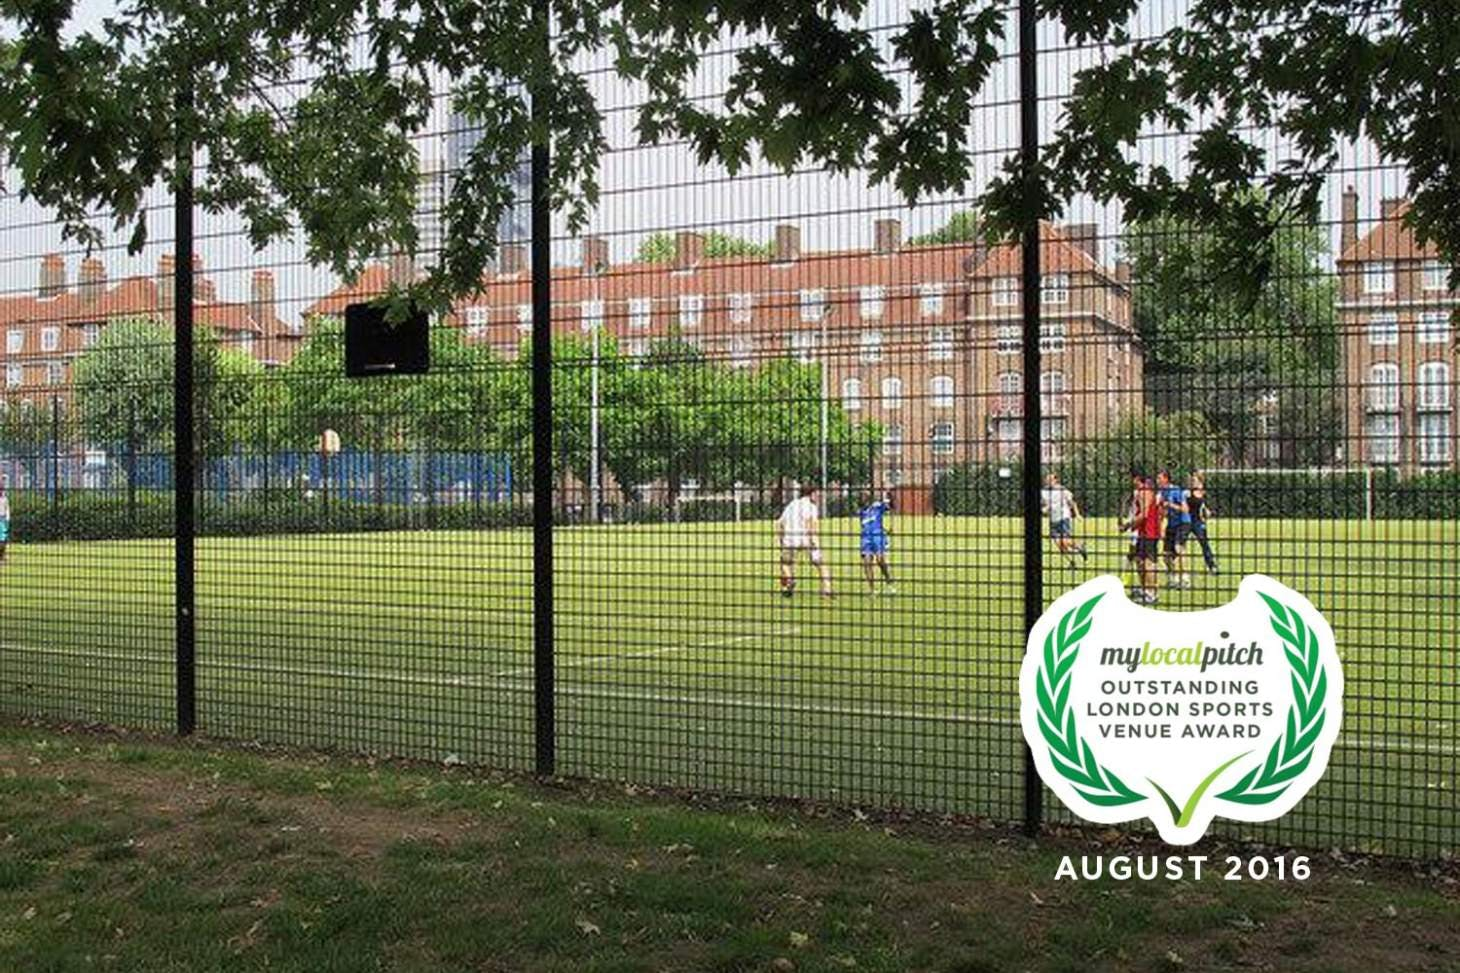 Tabard Gardens 11 a side | Astroturf football pitch